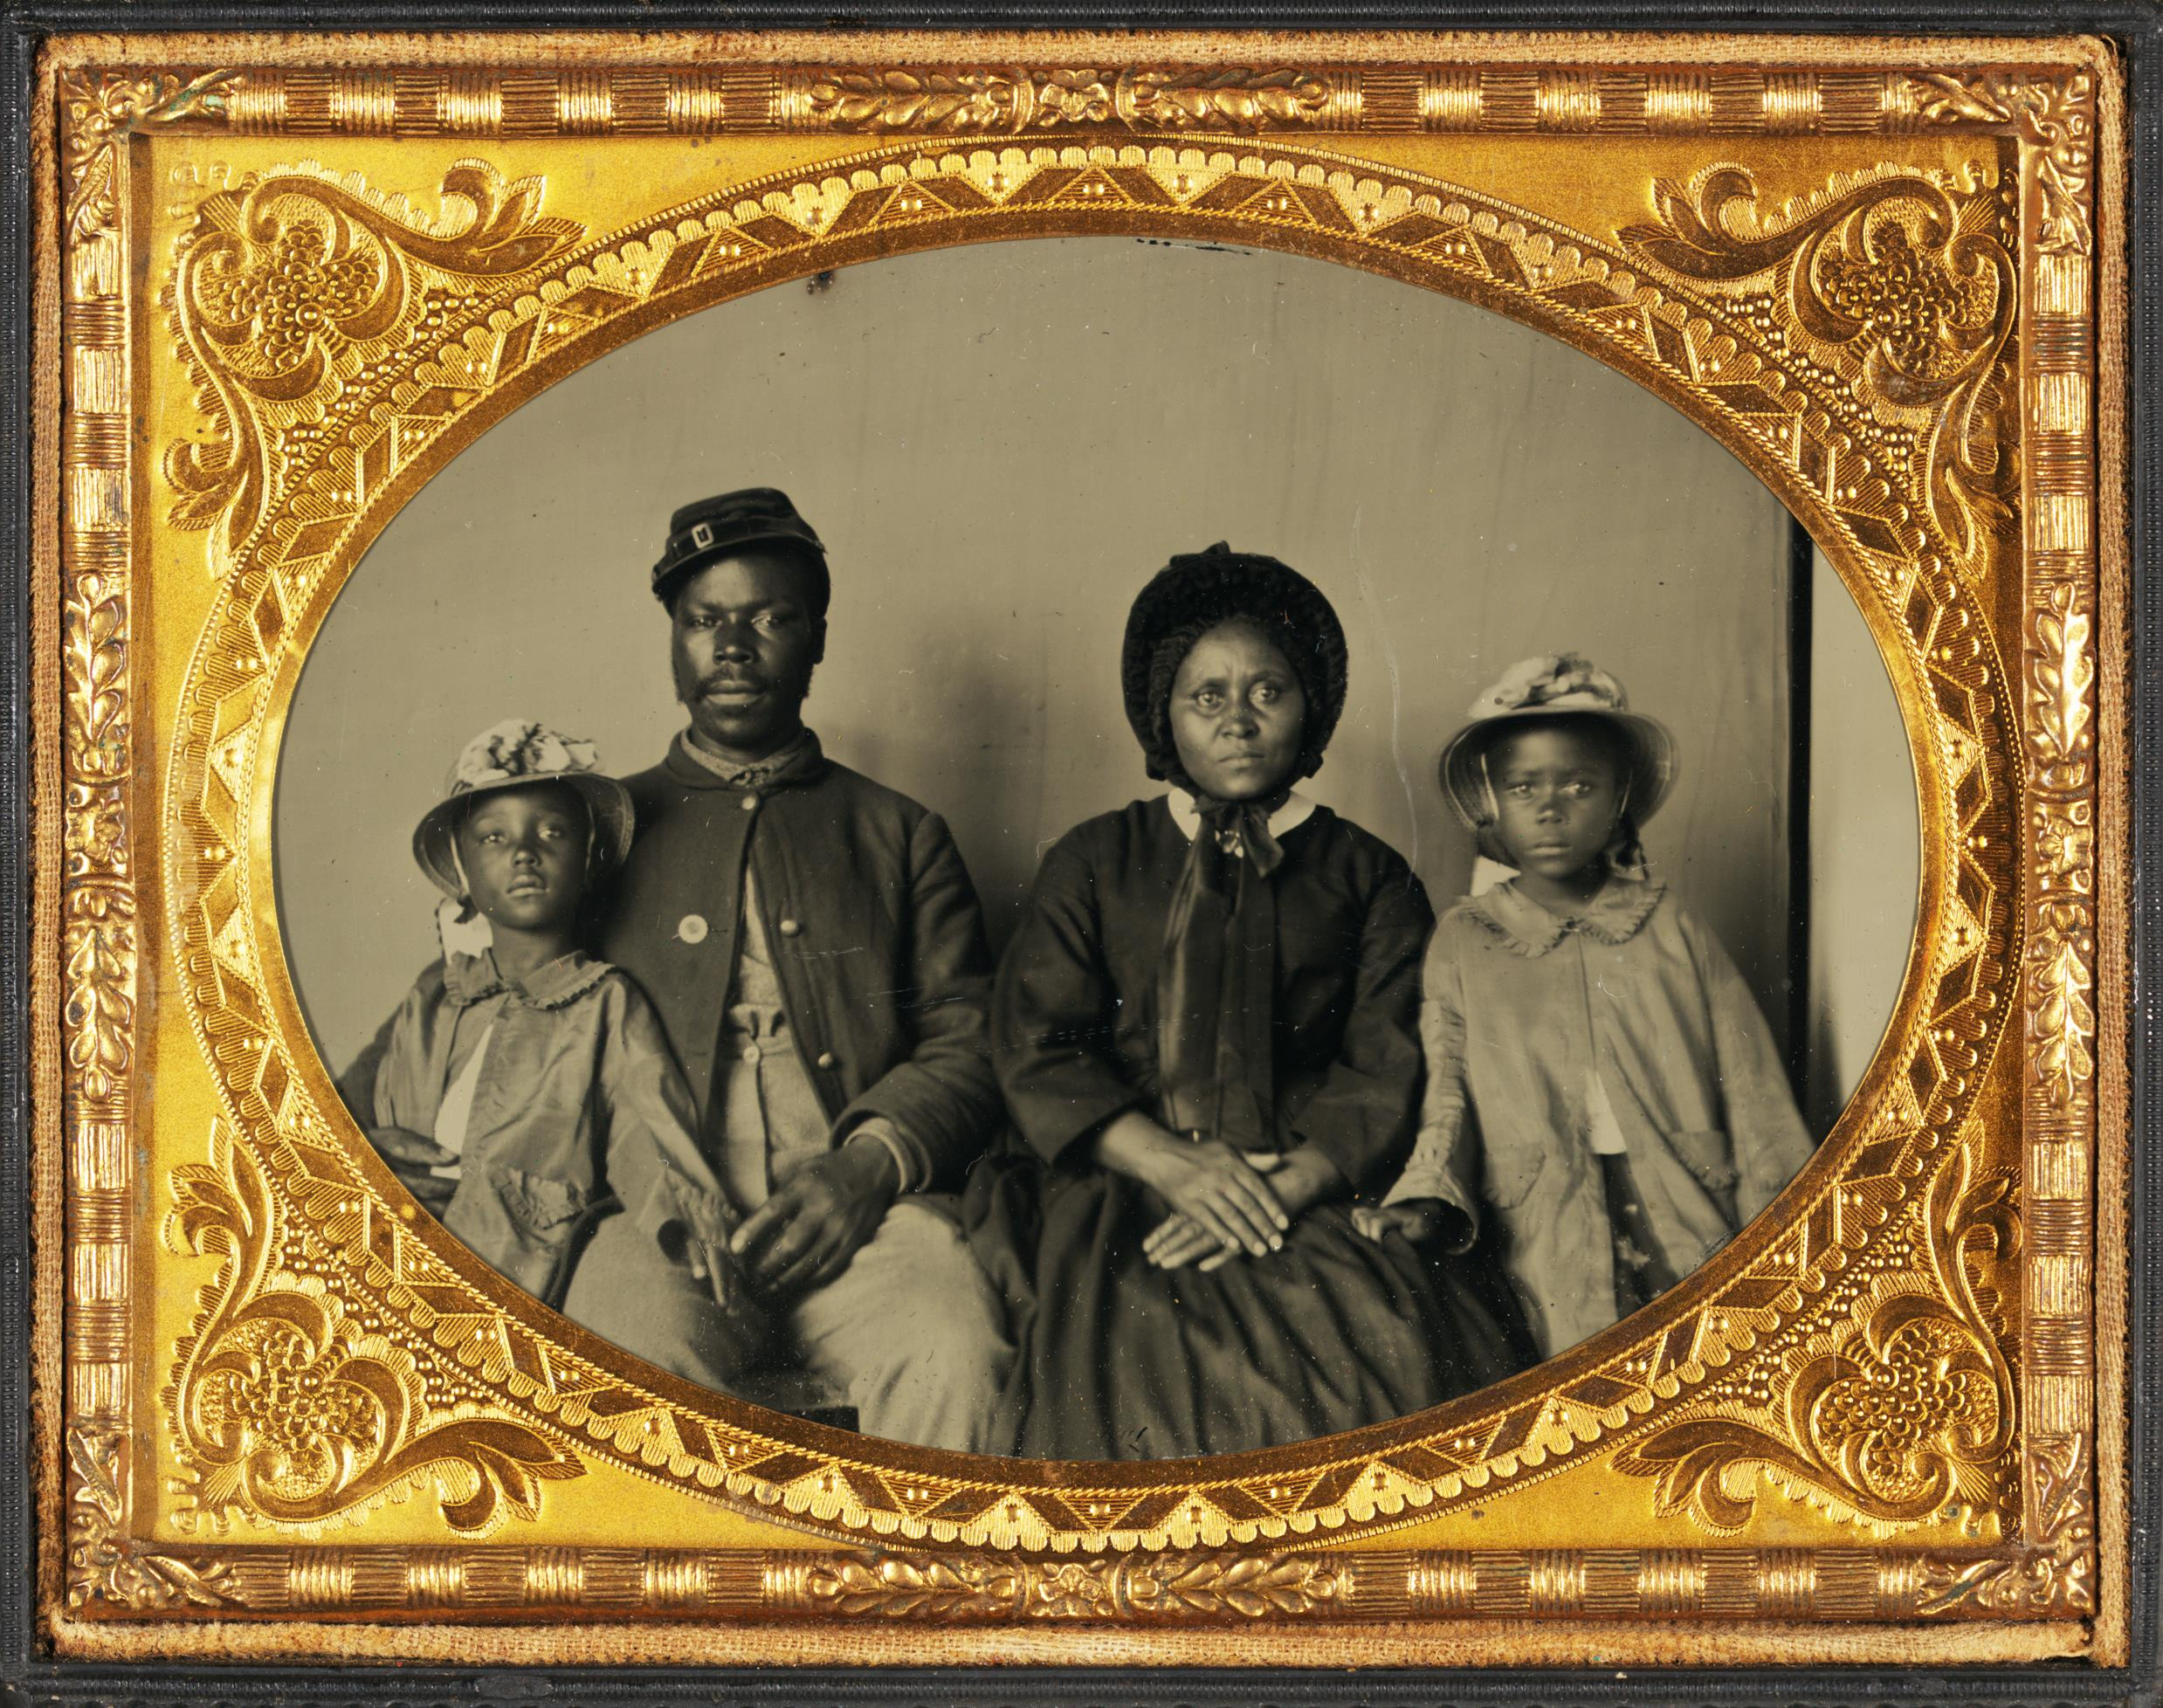 african american soldiers in the civil war Losses among african americans were high, and from all reported casualties, approximately one-third of all african americans enrolled in the military lost their lives during the civil war american american soldiers during the war.